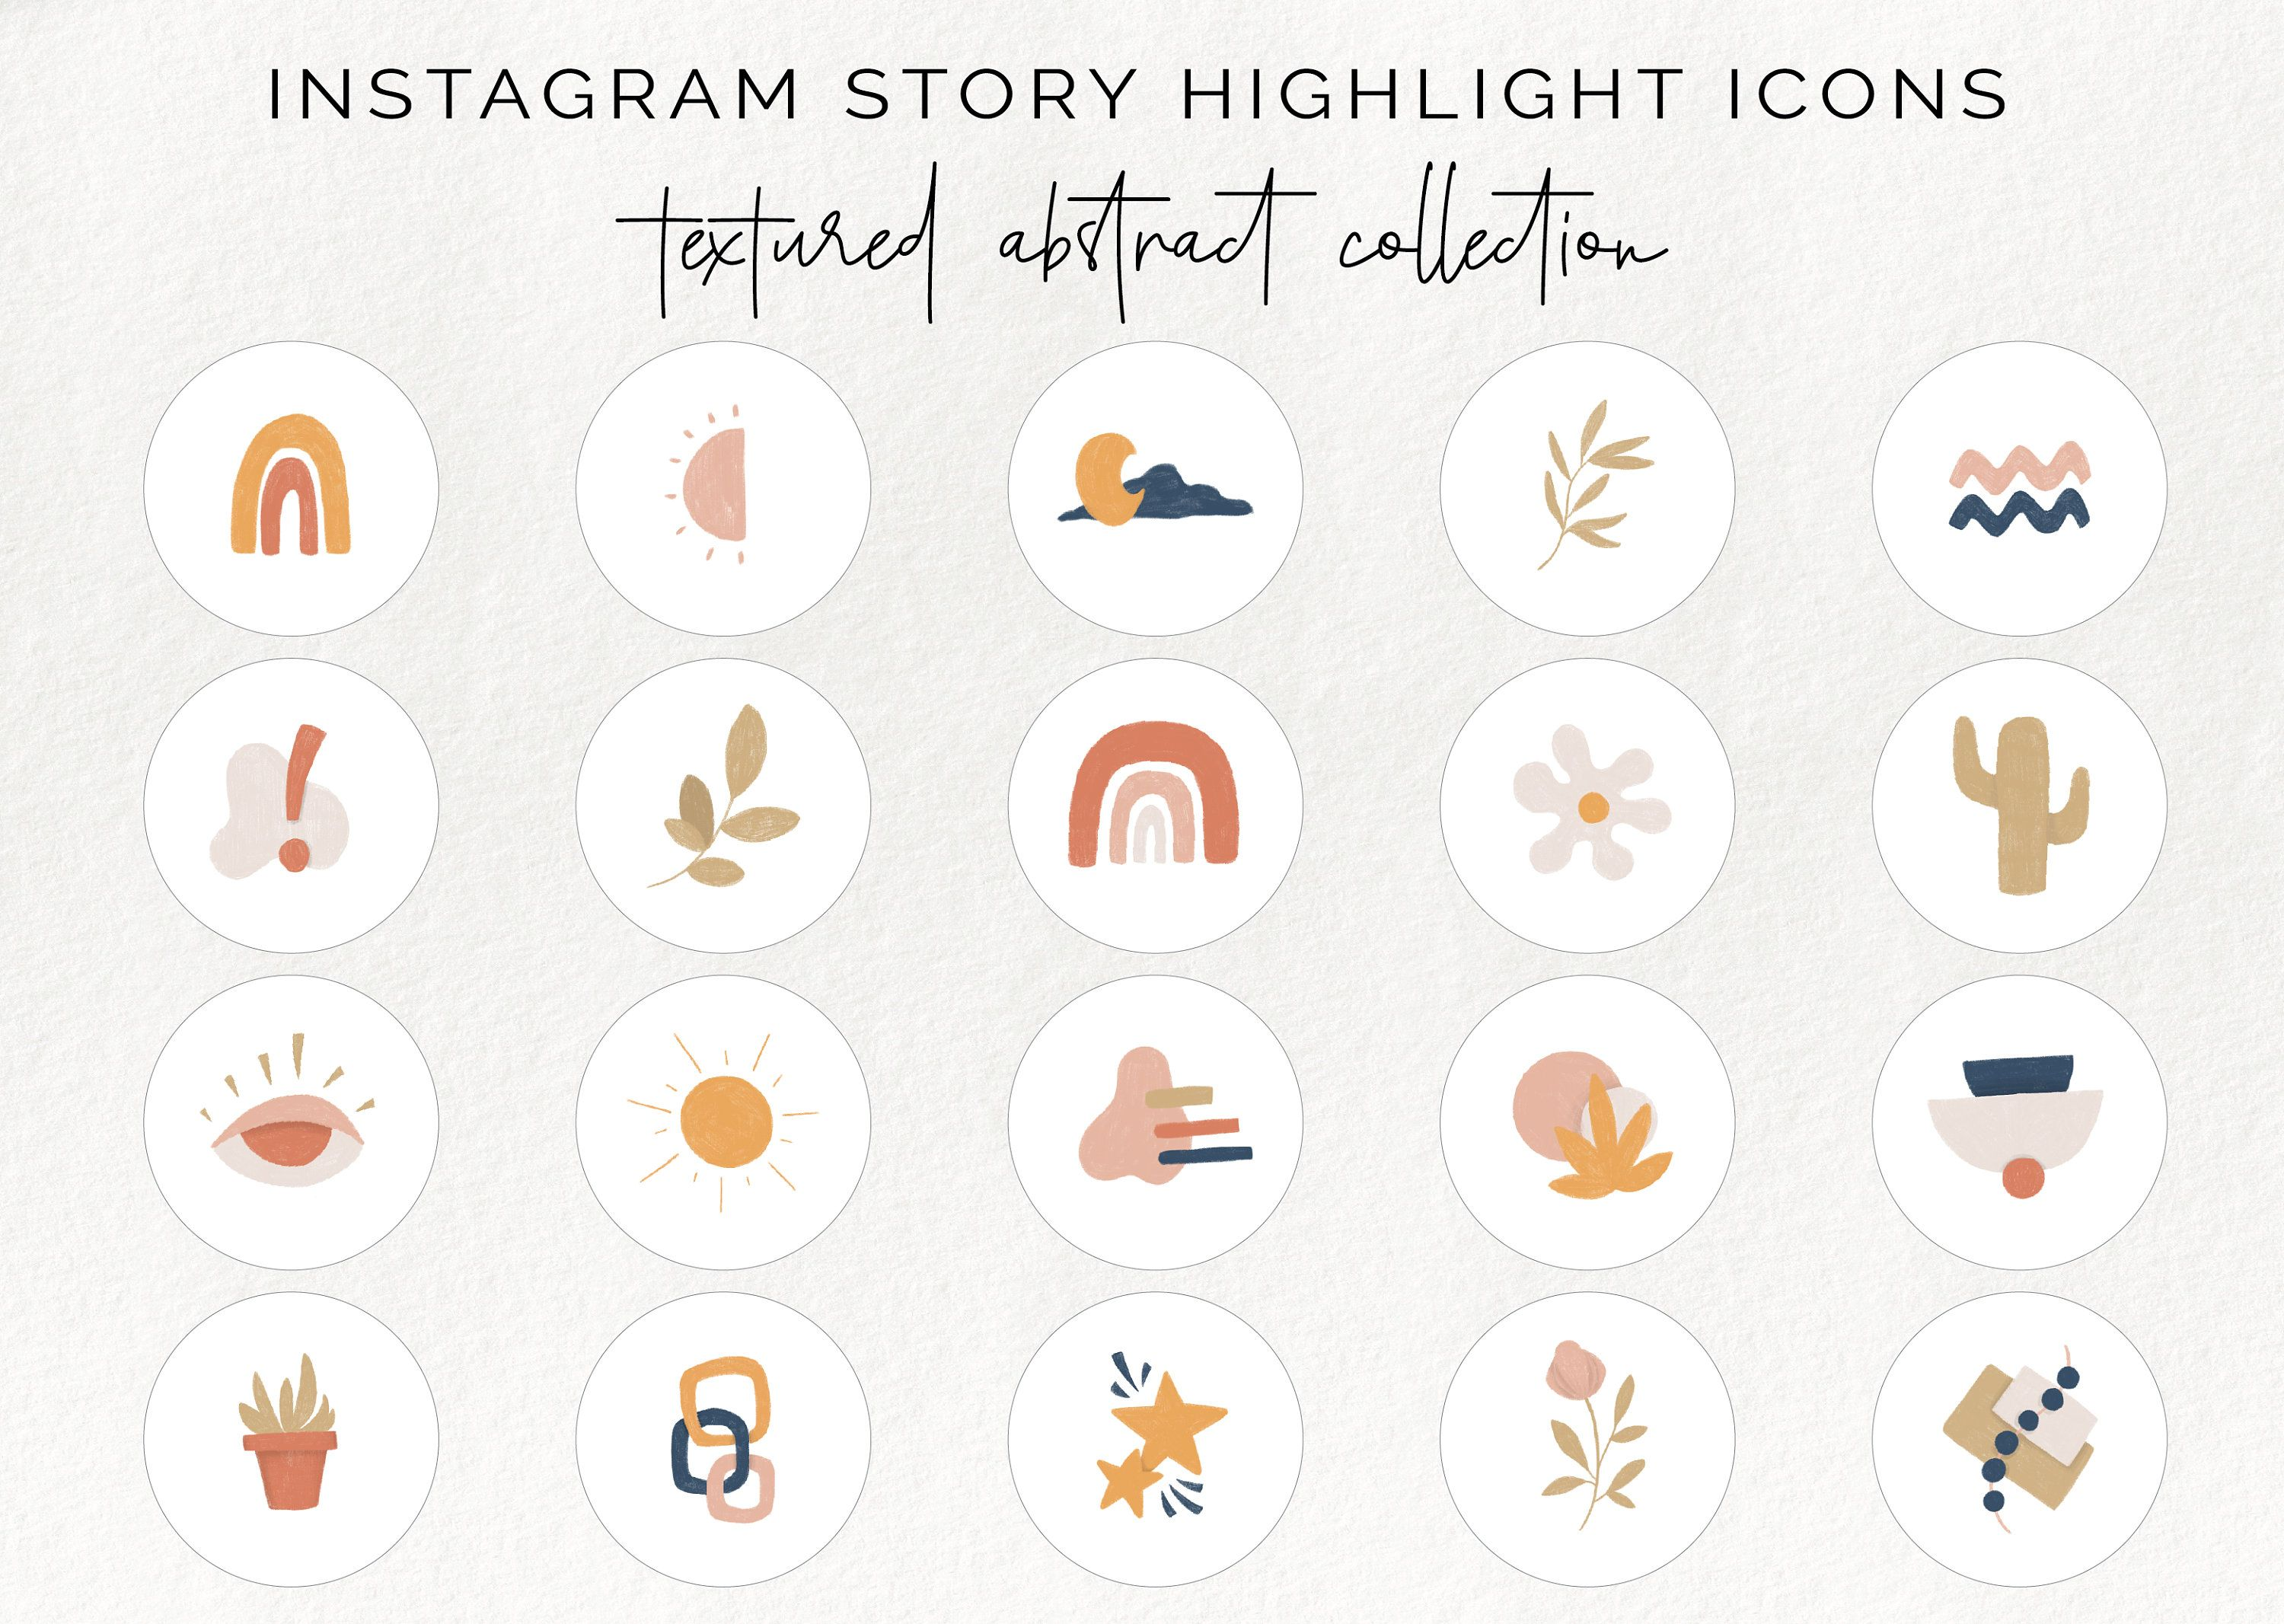 20 Instagram story highlight icons abstract insta story